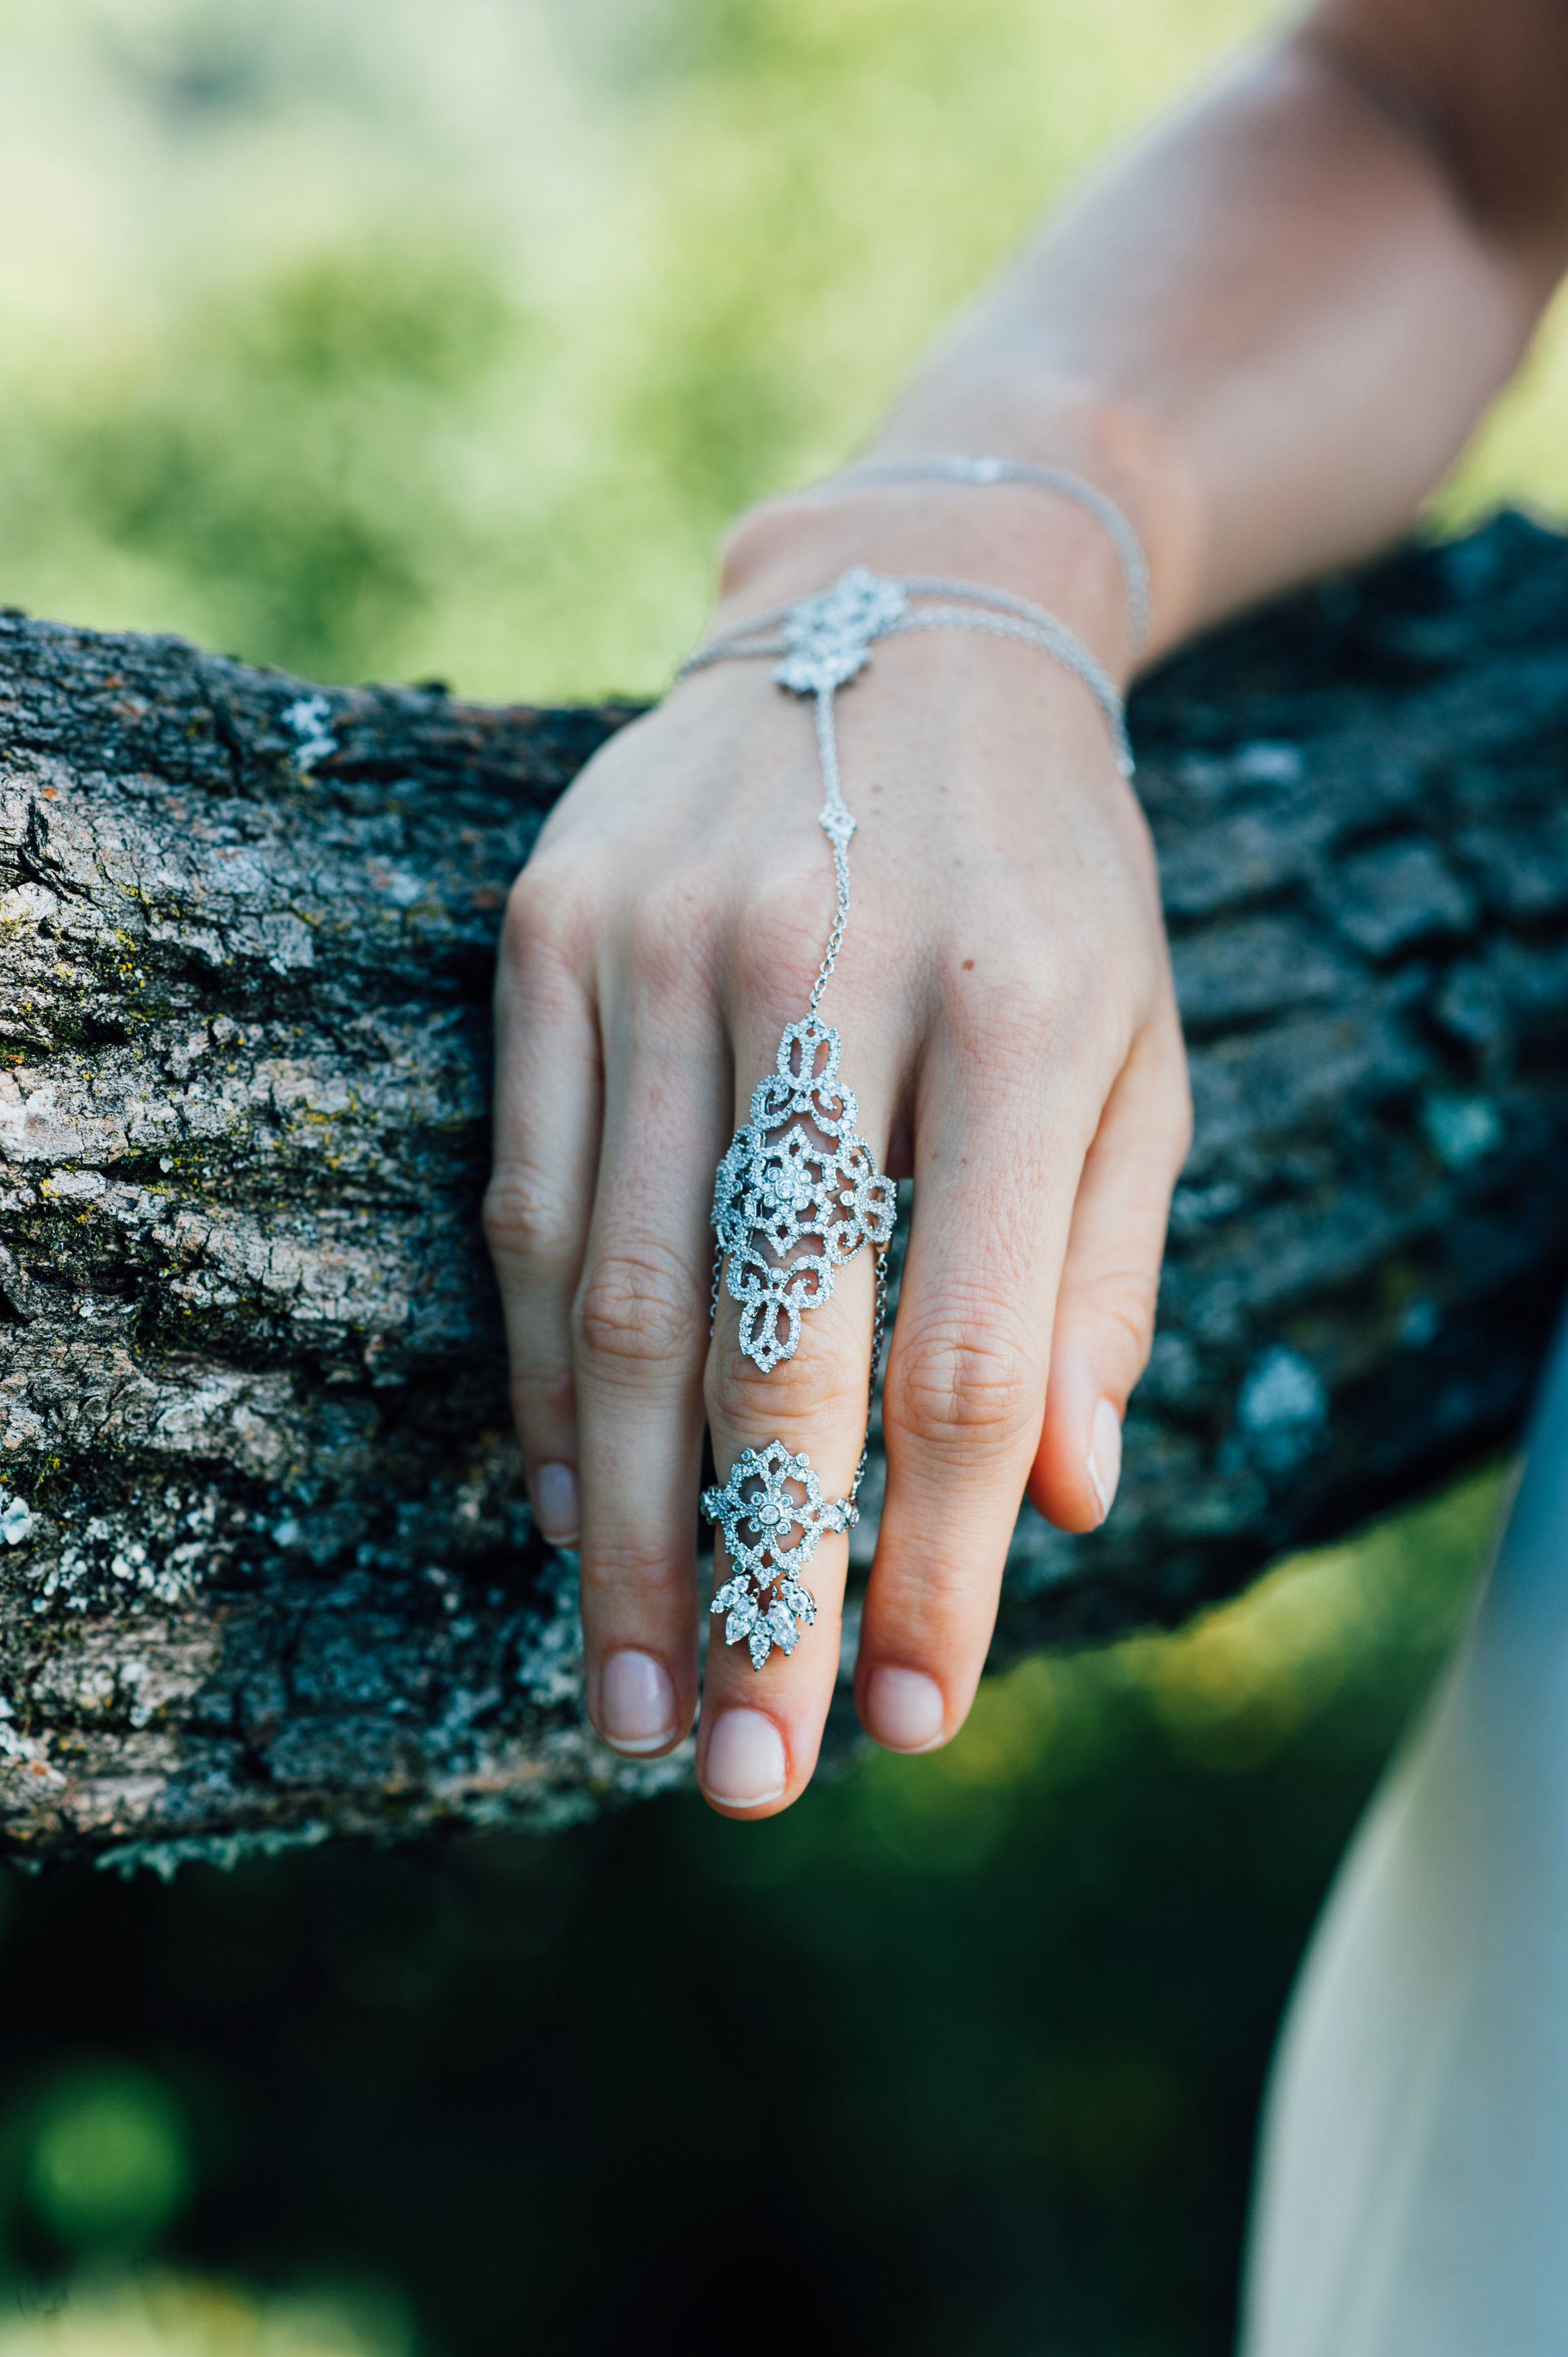 Game of Thrones Editorial Shoot by Whiskey & White Events. At the Old Edwards Inn in Highlands, NC.   Photo by Cameron Reynolds Photography  Design & Styling by Whiskey & White Events  Model is Austin Boatwright  Jewelry by Samantha Willis Bridal